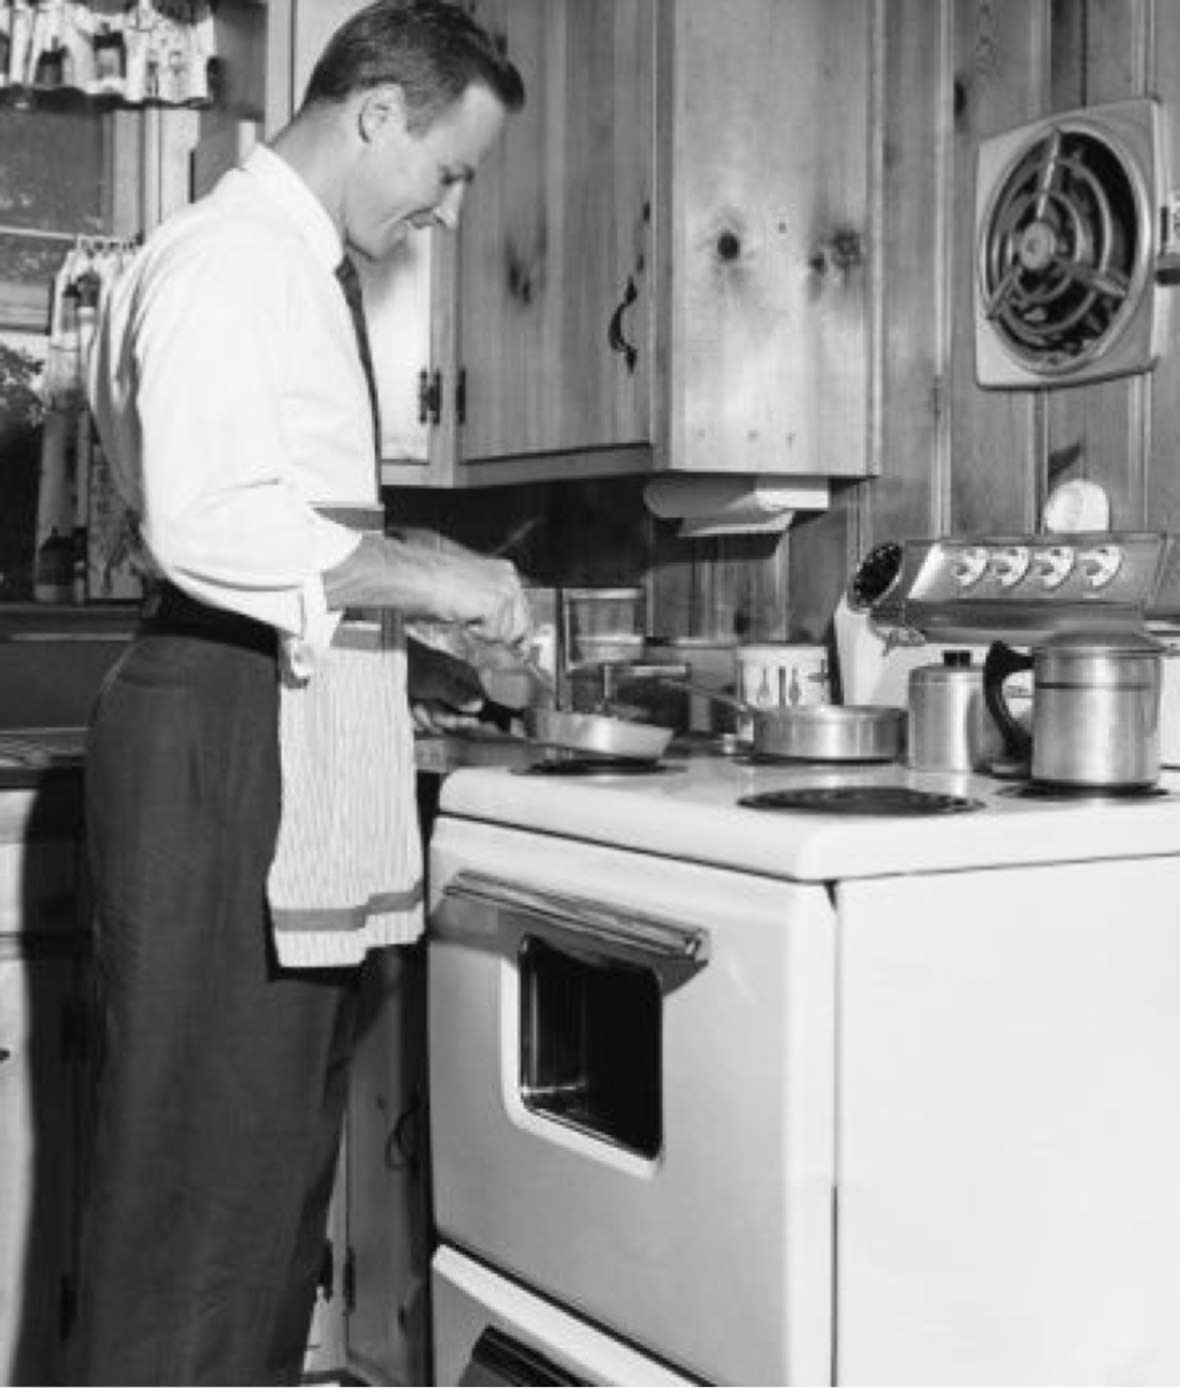 Vintage photo of a man in slacks and apron cooking at a stove